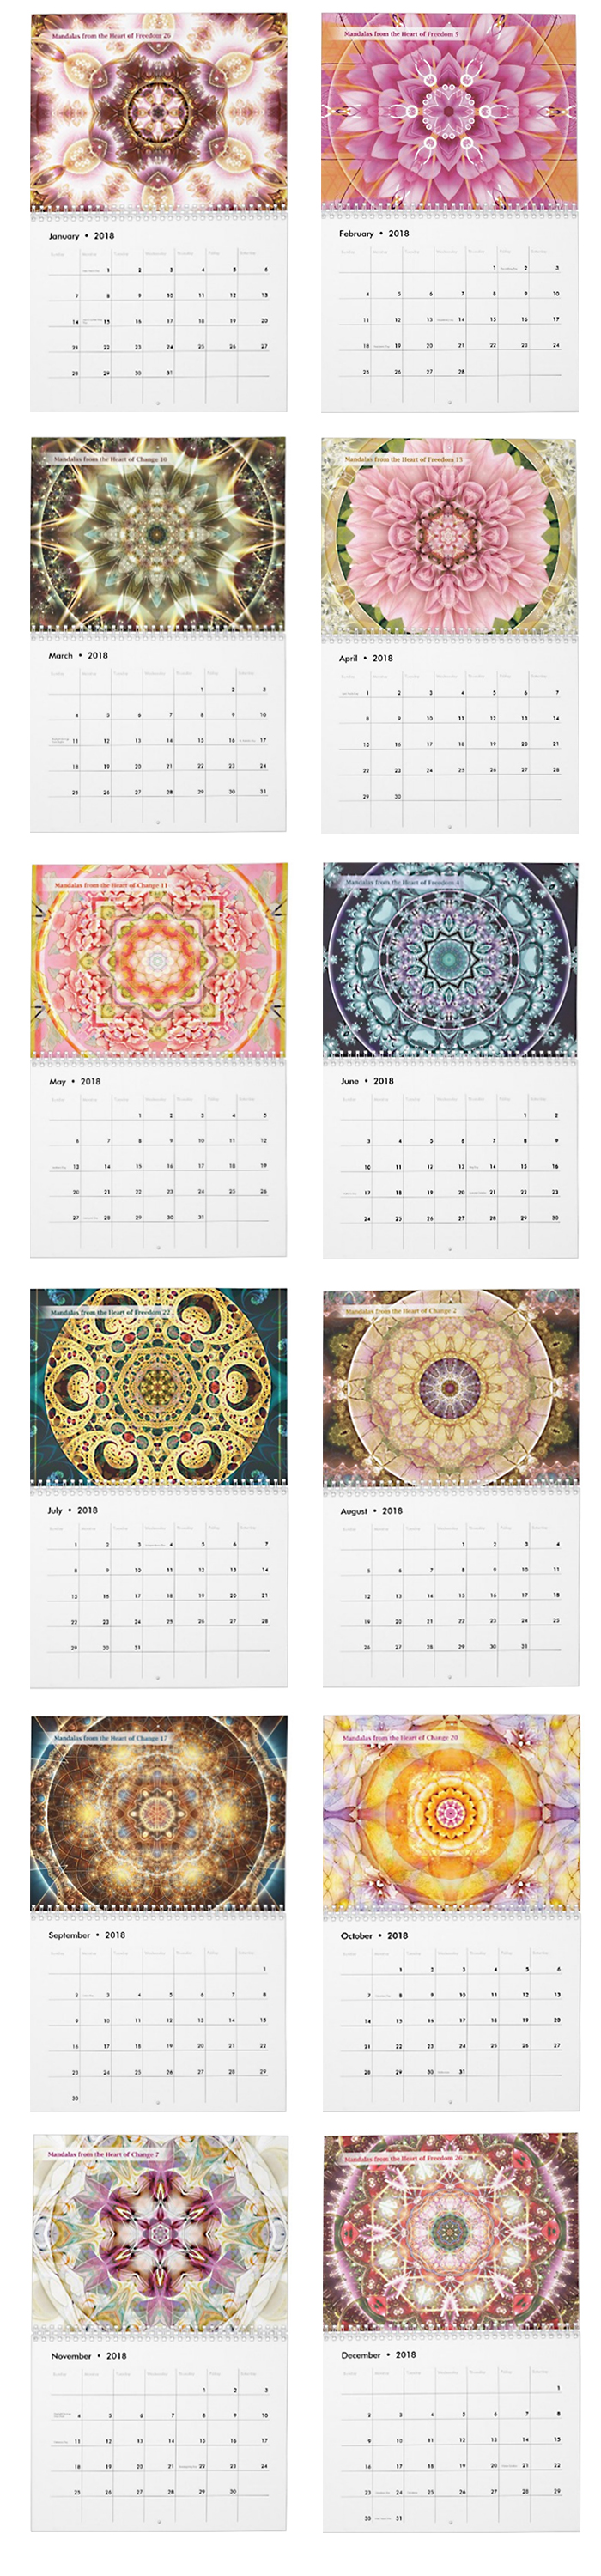 Mandala from the Heart of Freedom and Change calendar pages